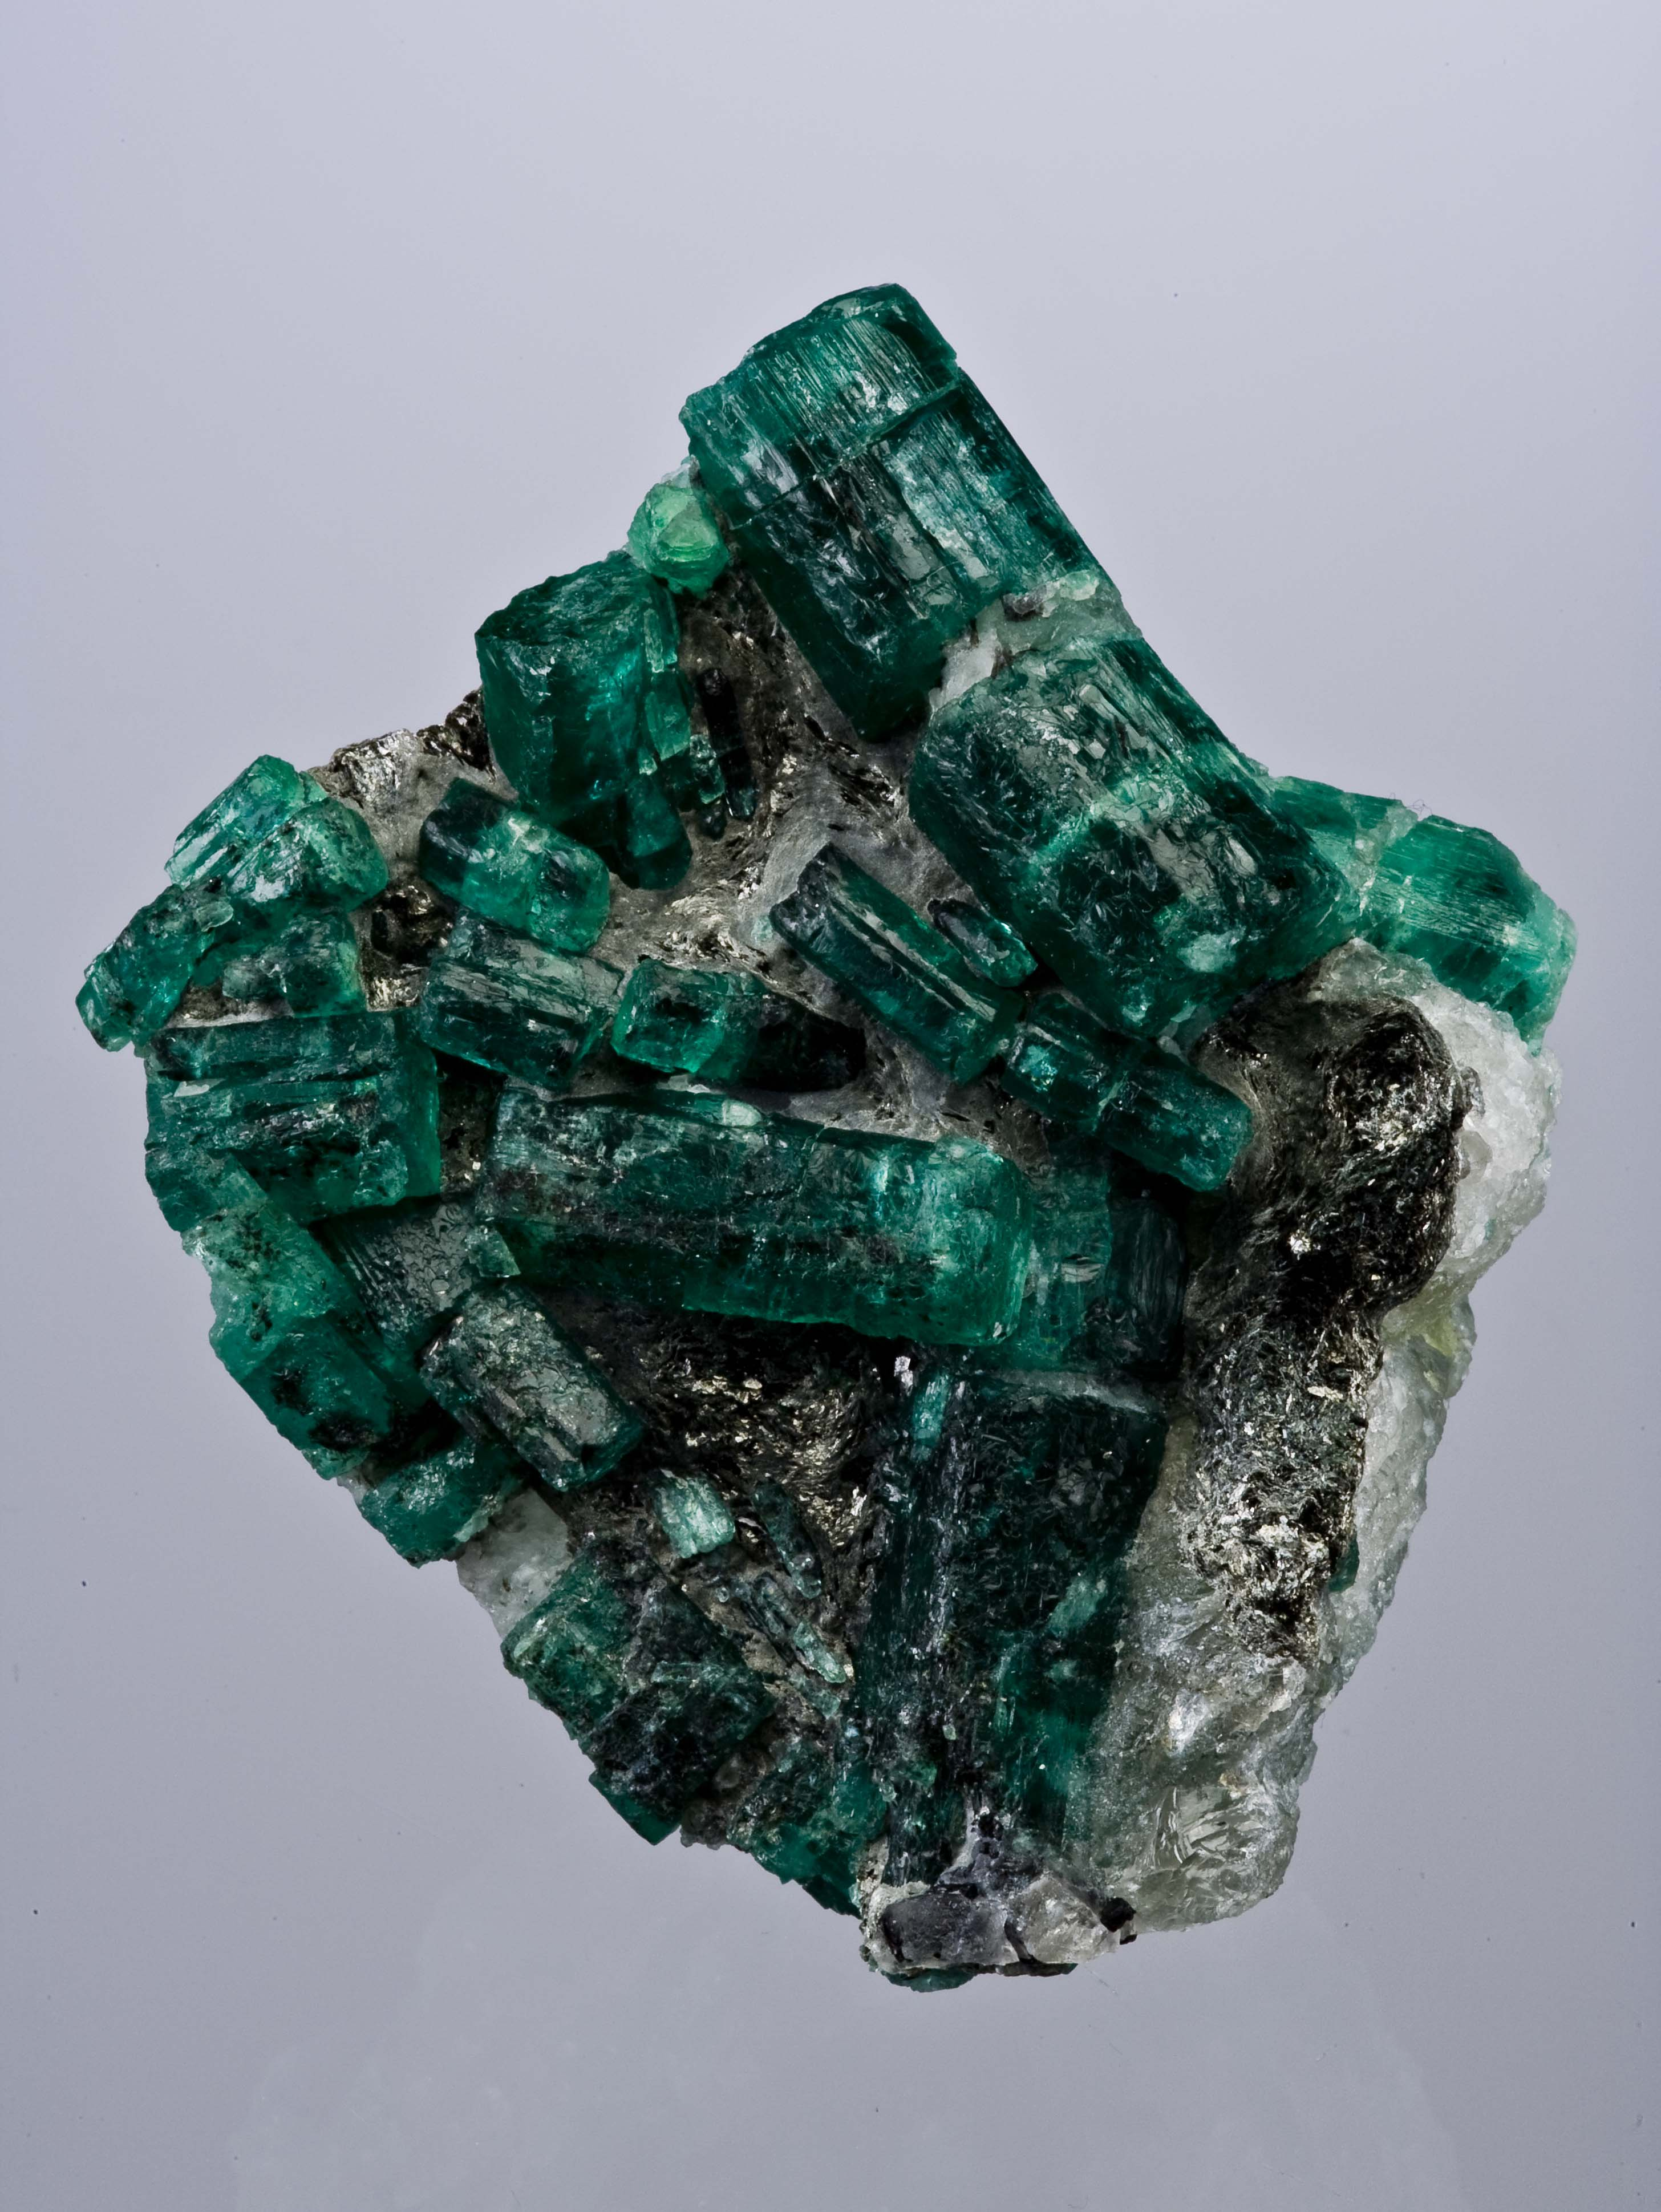 Emerald is usually found alongside other gems, most commonly quartz.  Of the four globally recognized precious stones, emerald is one of them, the others being rubies, sapphires and diamonds. -- Emerald Facts